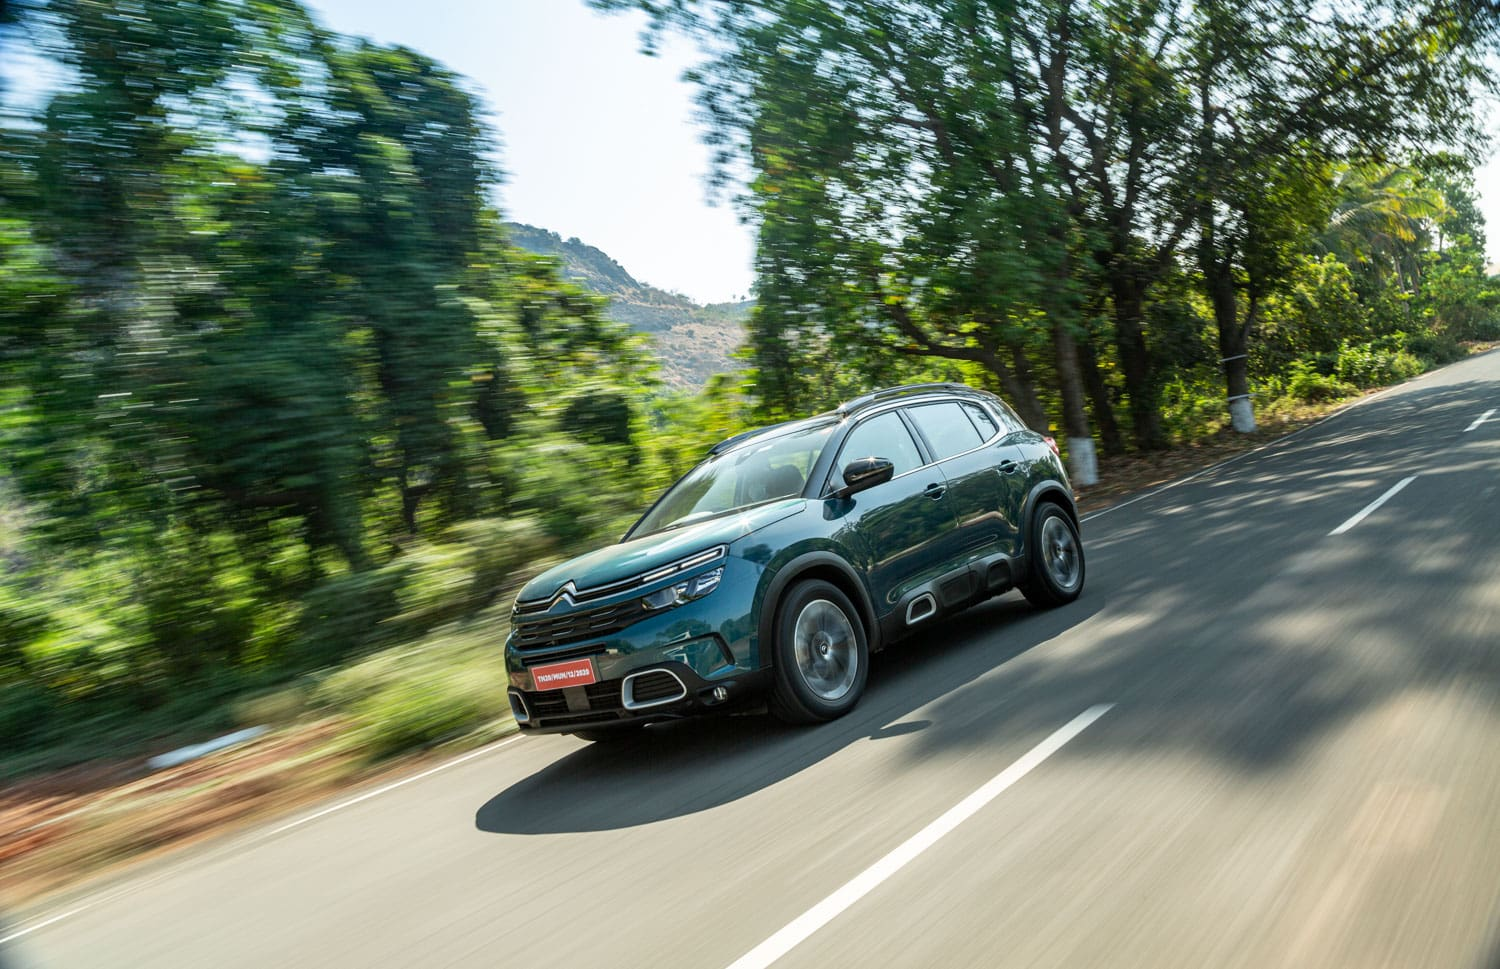 Top 5 Takeaways After The Price Reveal Of The Citroen C5 Aircross